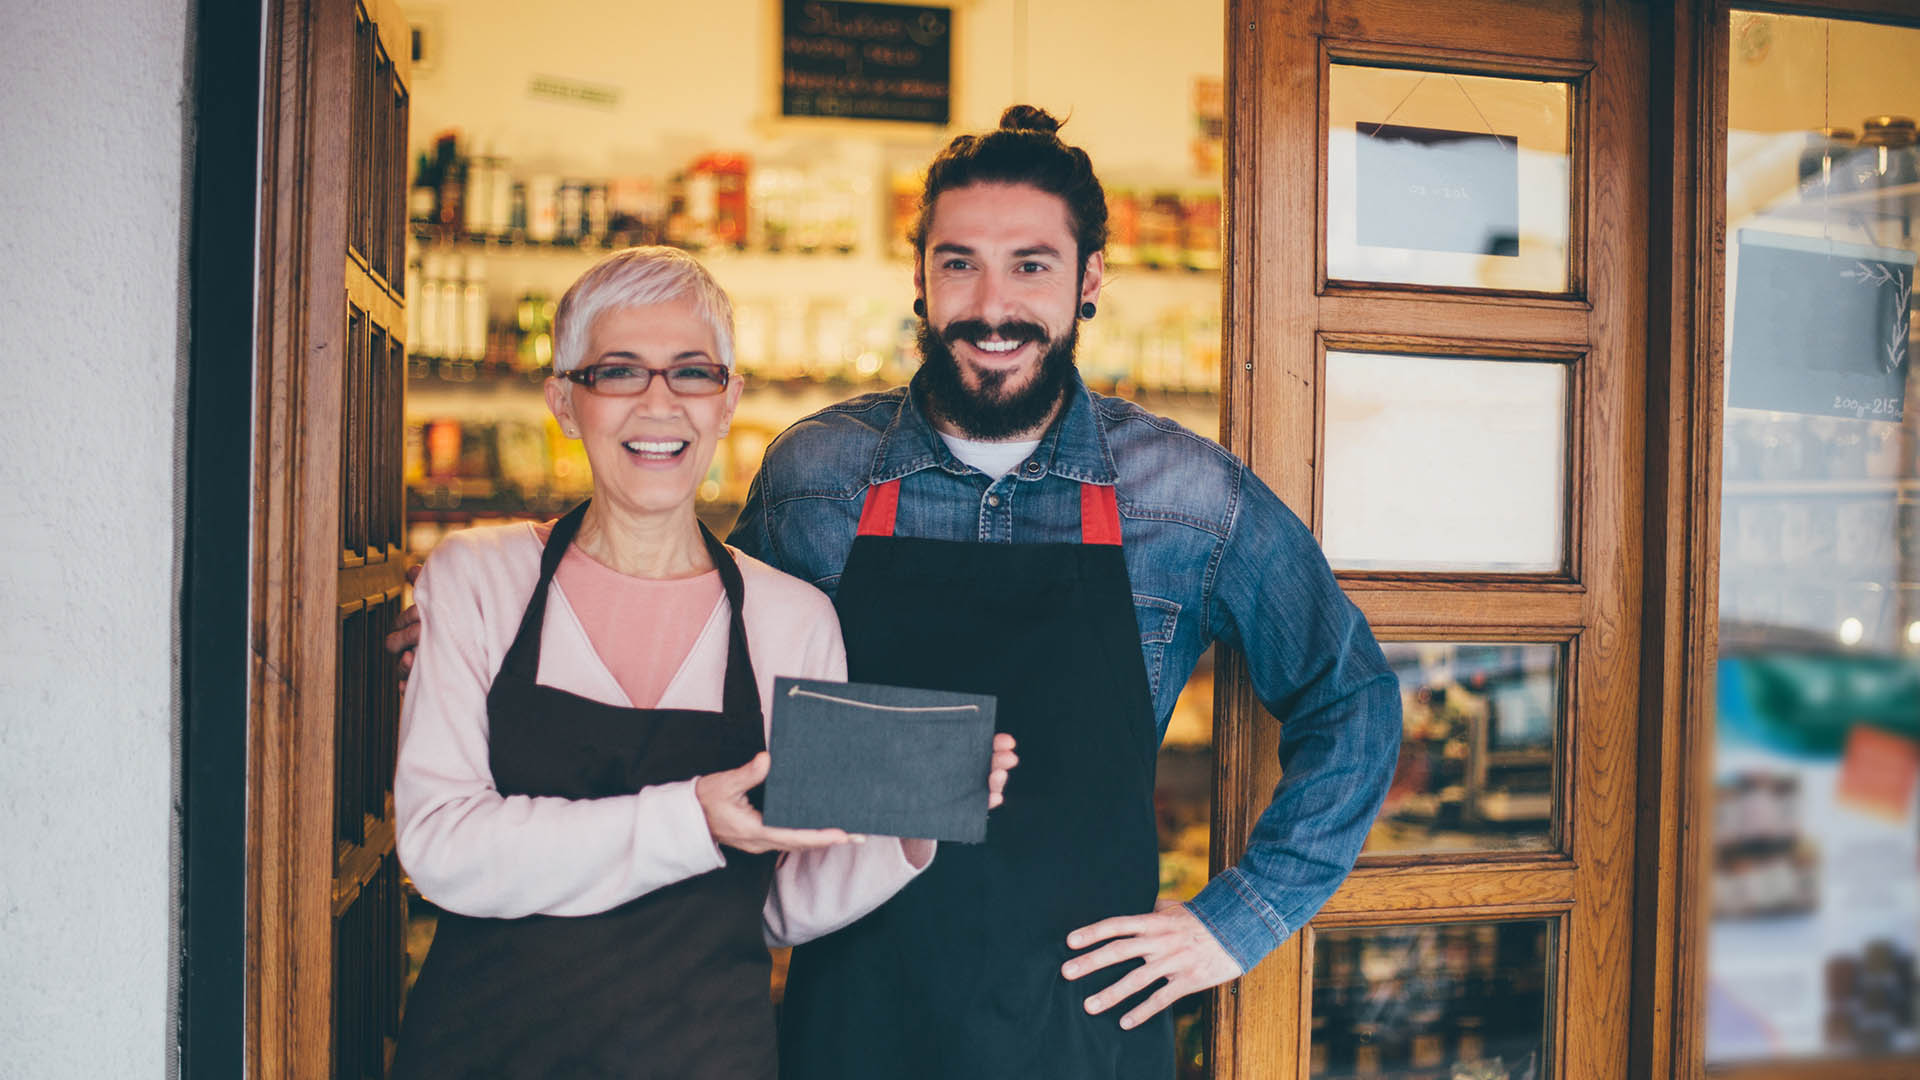 Small business owners opening the doors